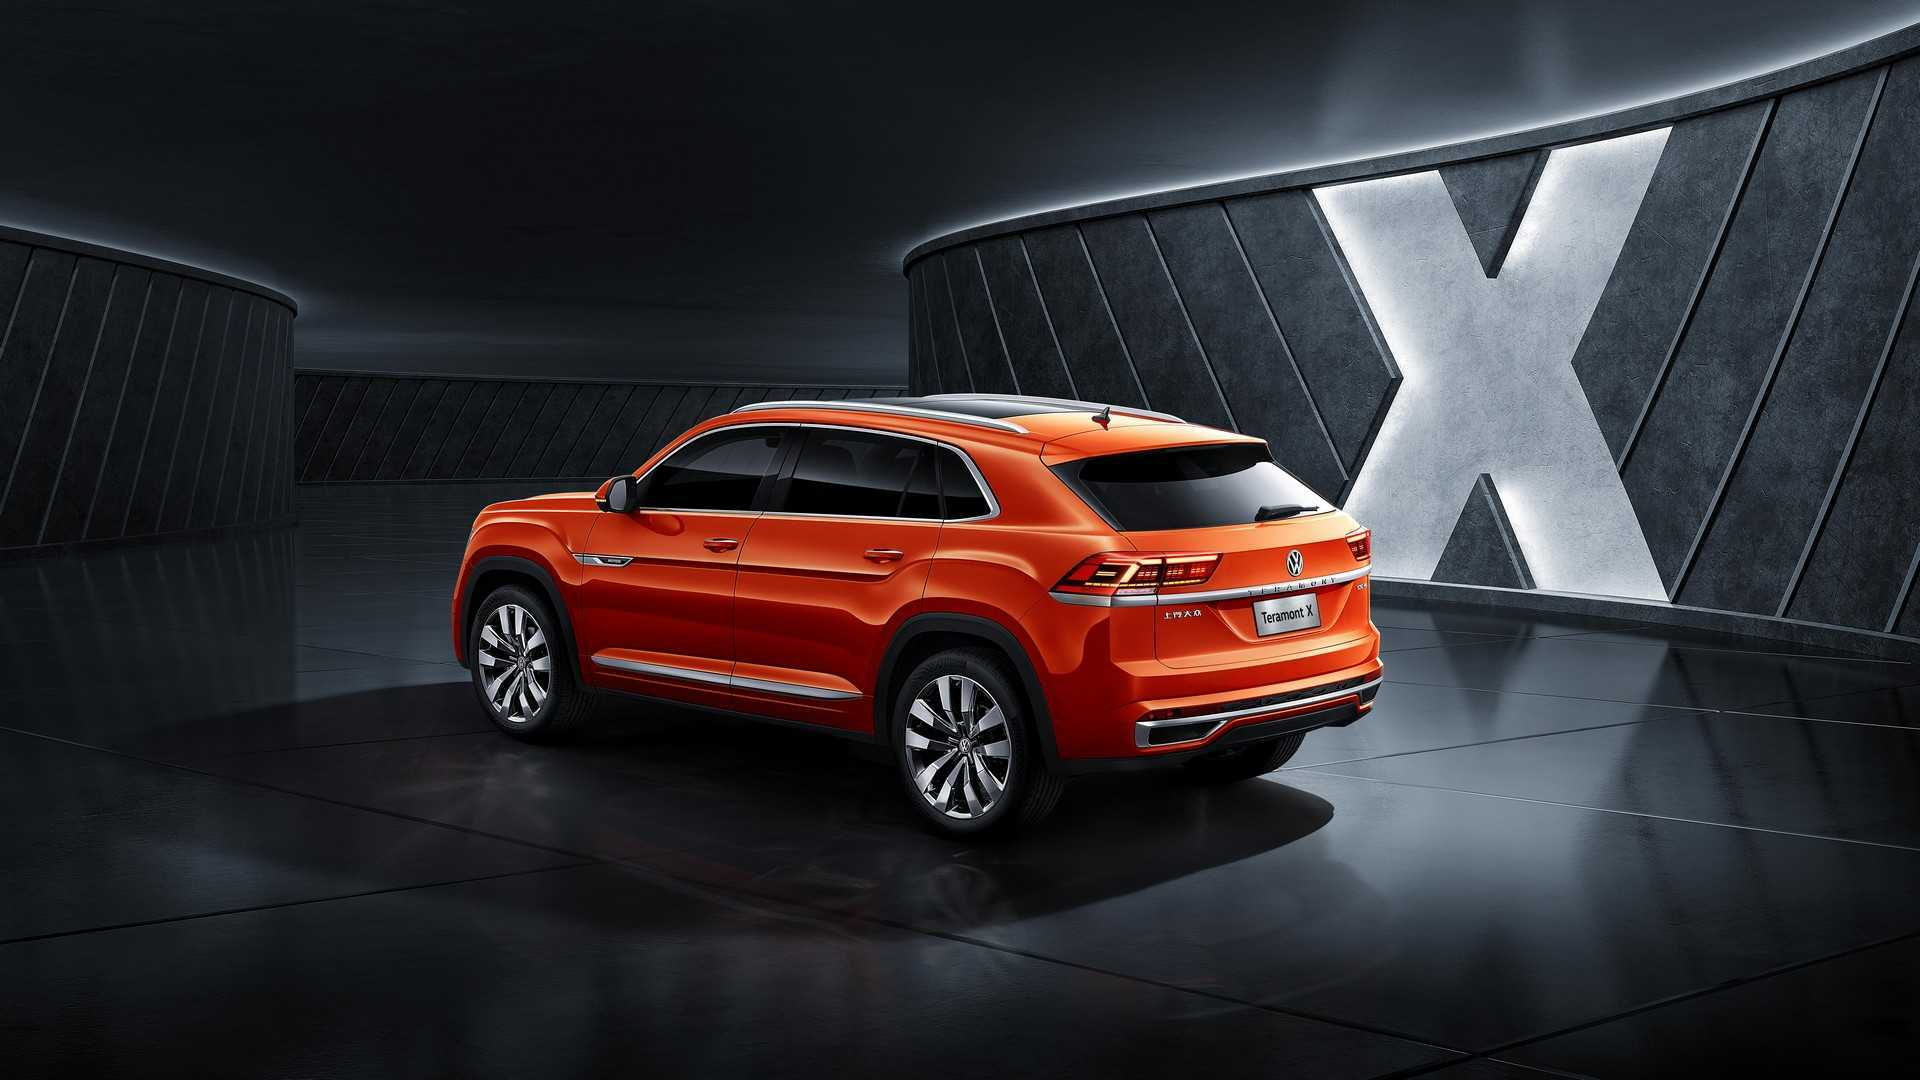 2019 Auto Shanghai Lighted Up With The Launch Of Volkswagen Teramont SUV Coupe!  - Volkswagen India - Mody Auto Group